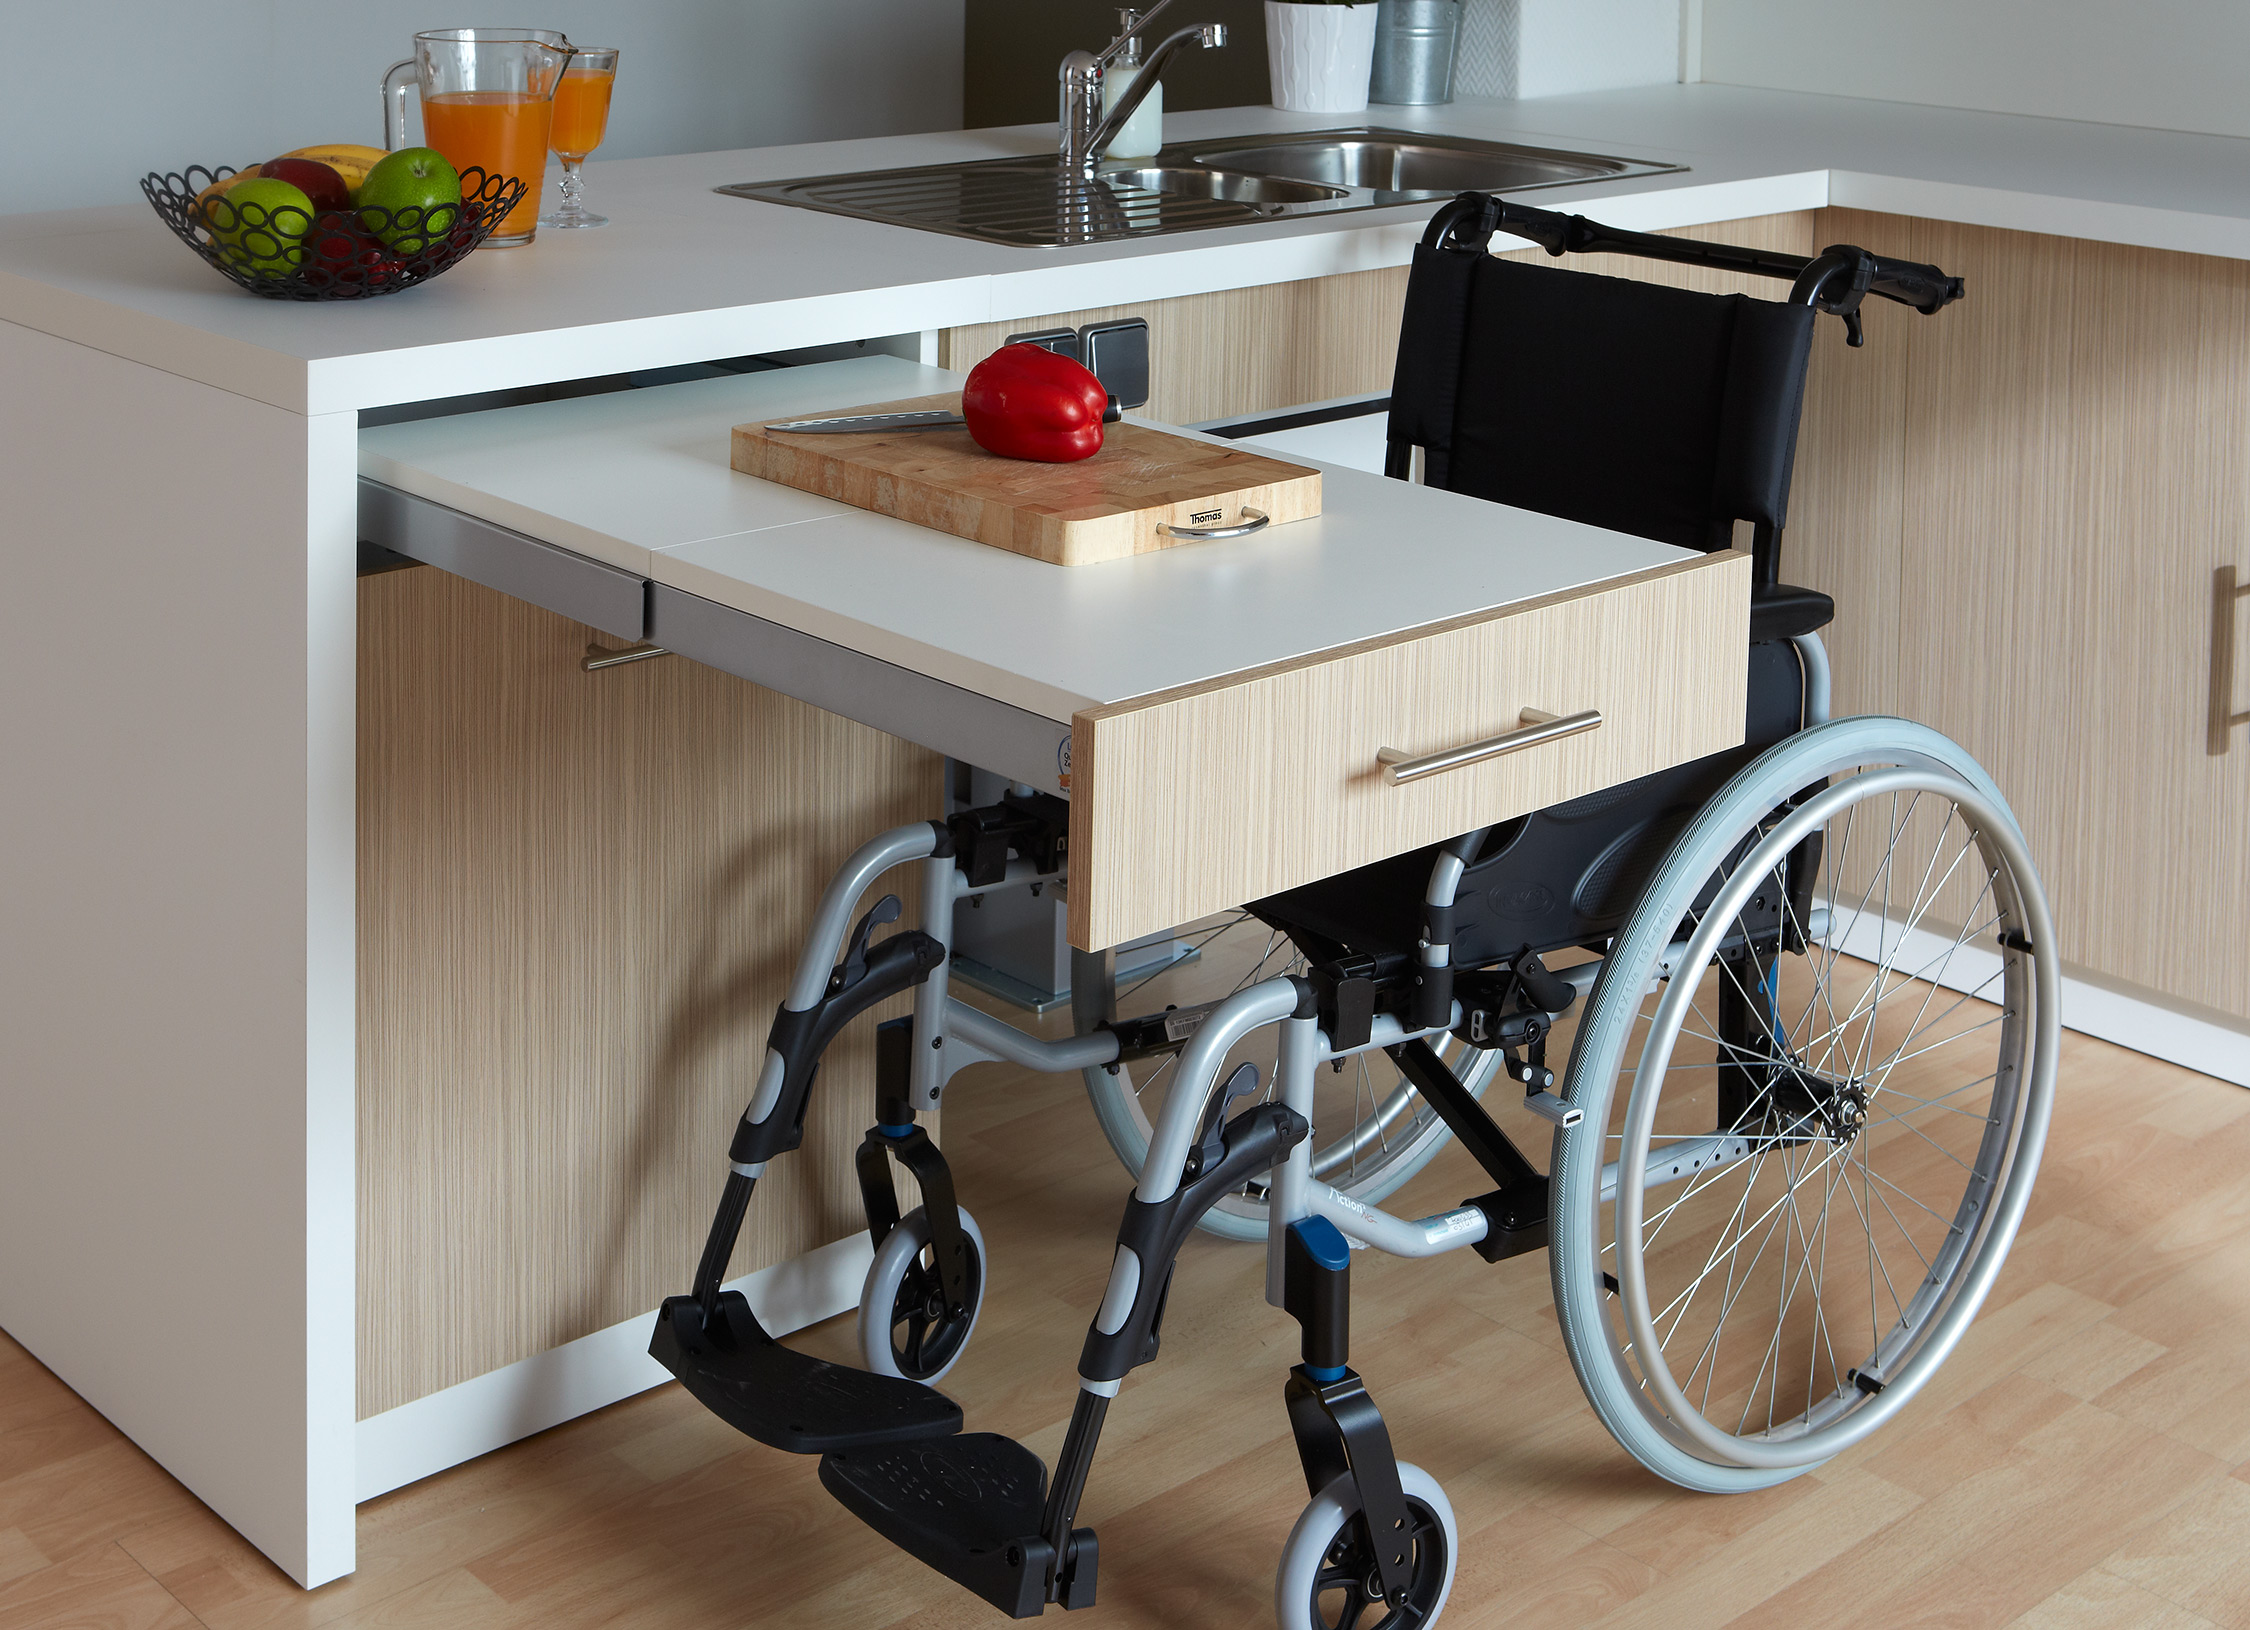 Cuisine adapt e pmr avec modulhome for Table de cuisine retractable